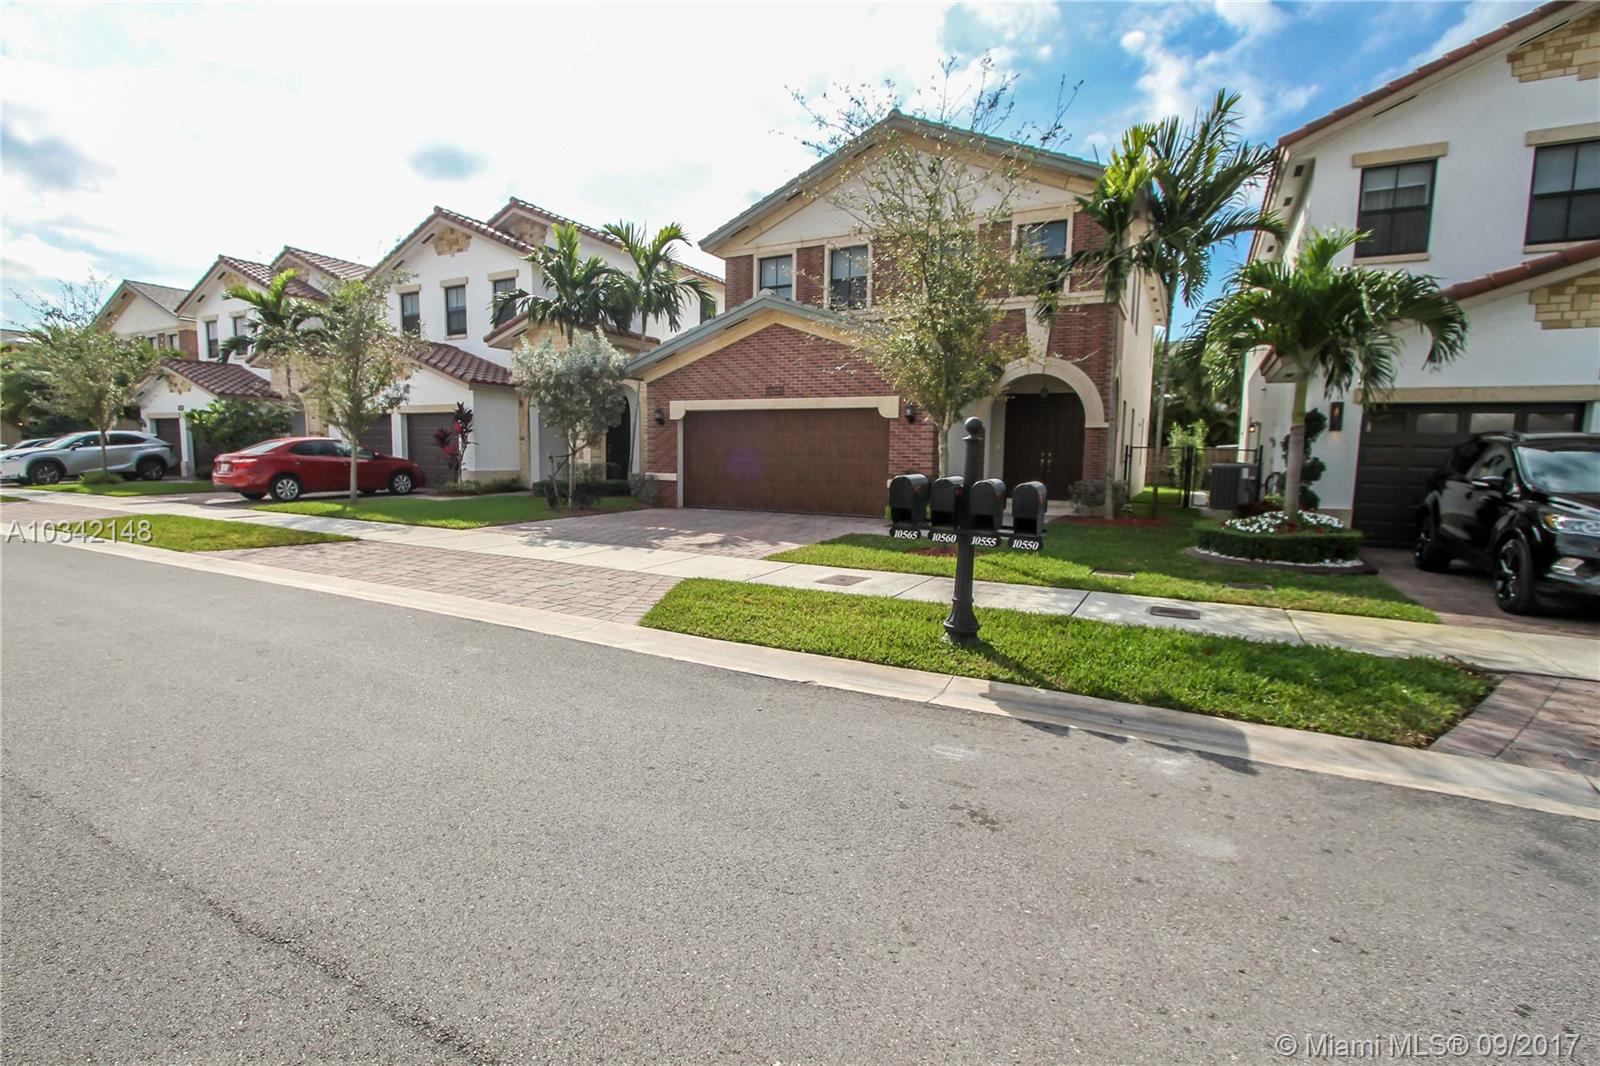 10550 Nw 69th Ter, Doral FL, 33178